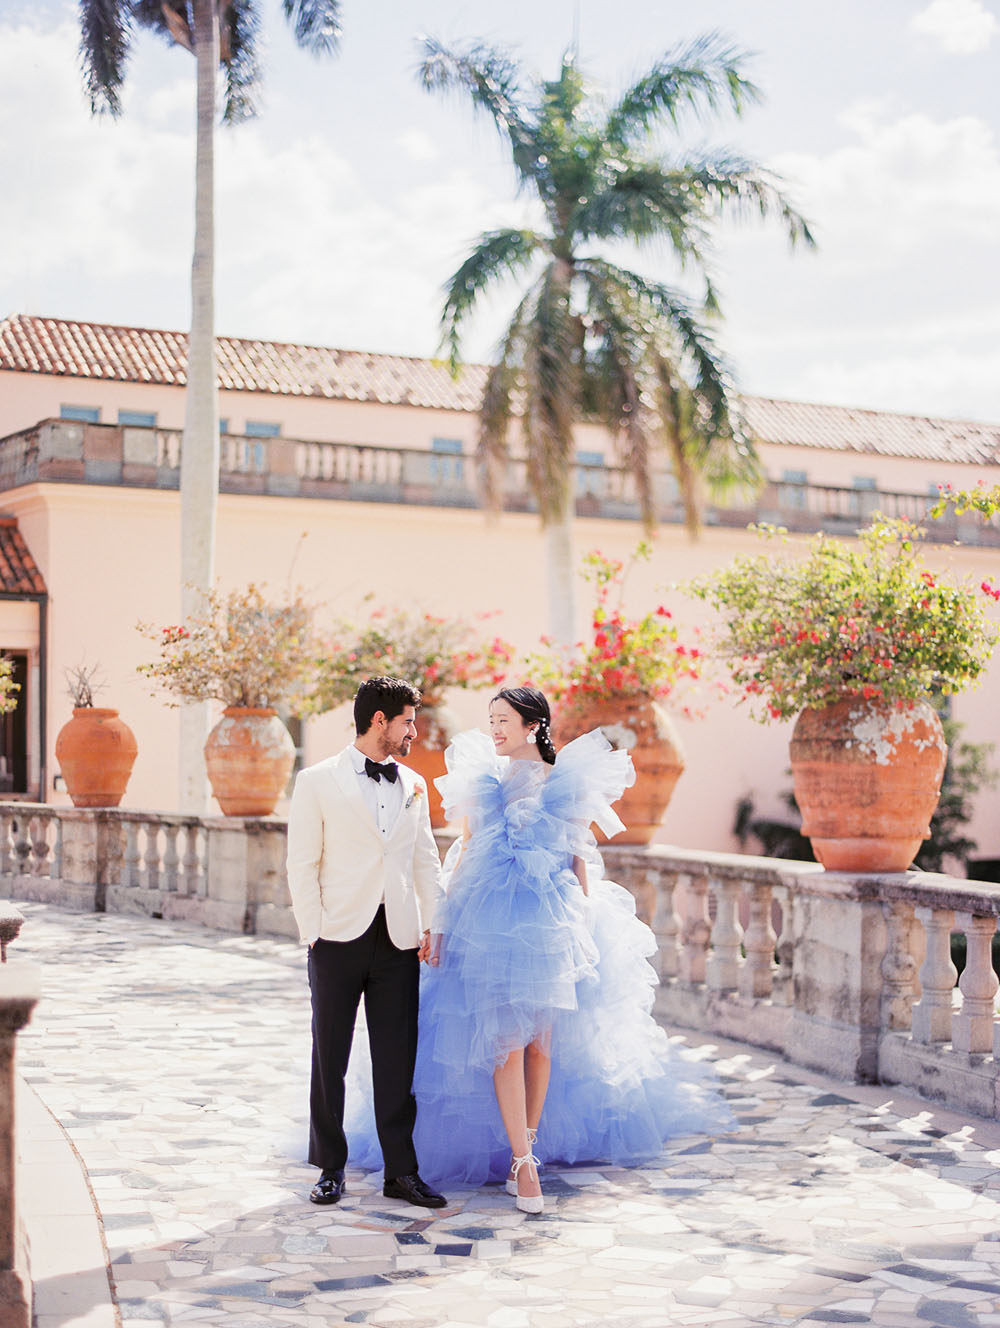 Romantic elopement inspo with a purple tulle gown